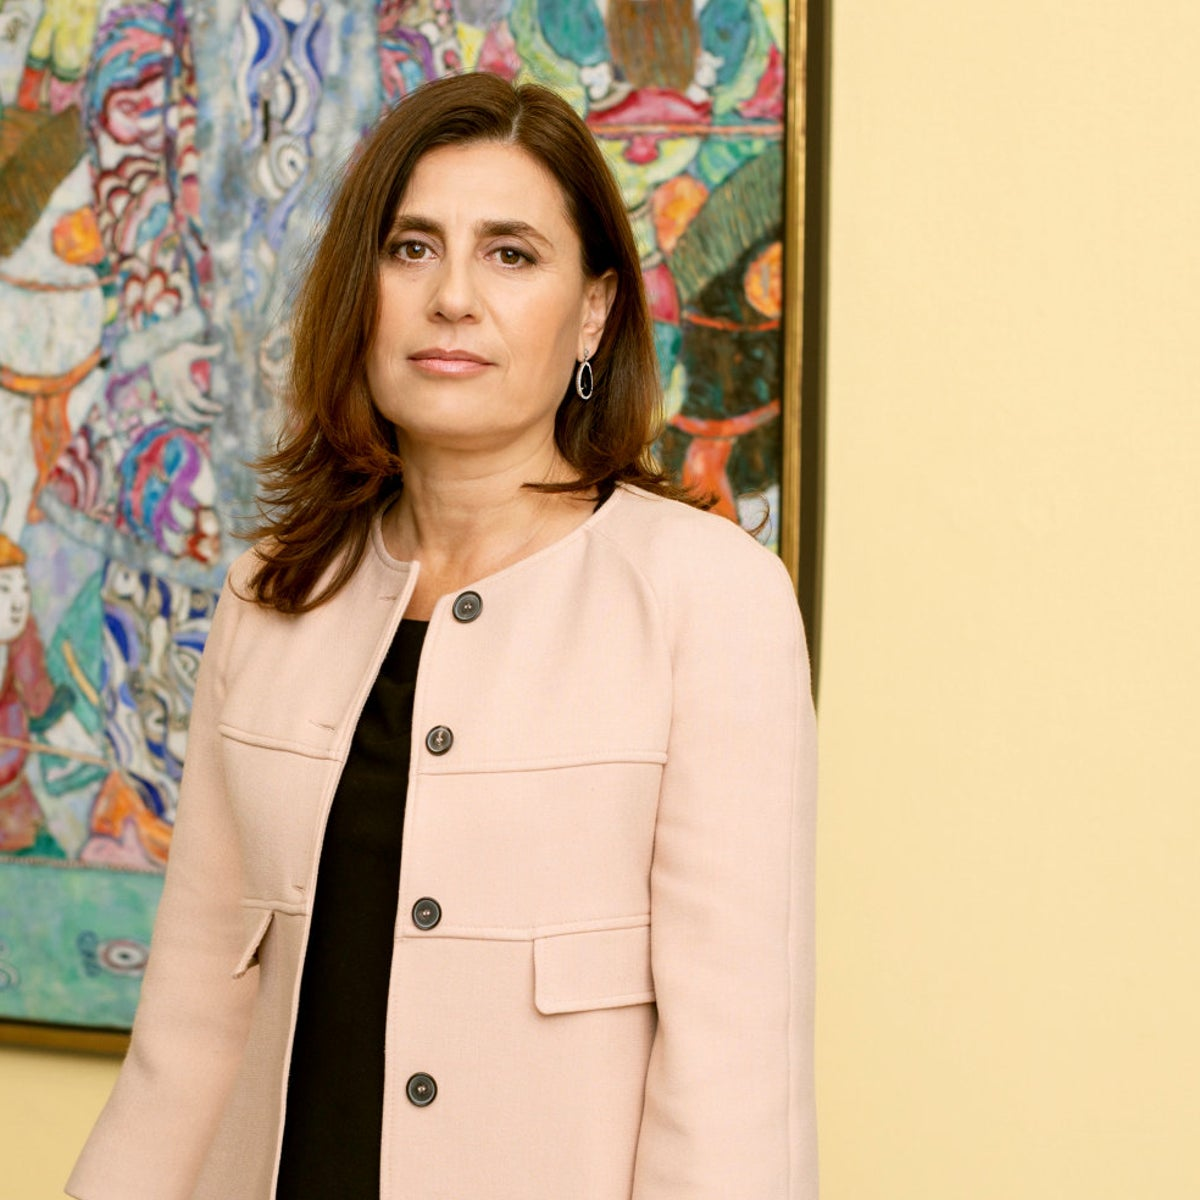 Tania Coen-Uzzielli. 'It's also very important to me to encourage the museum's staff'